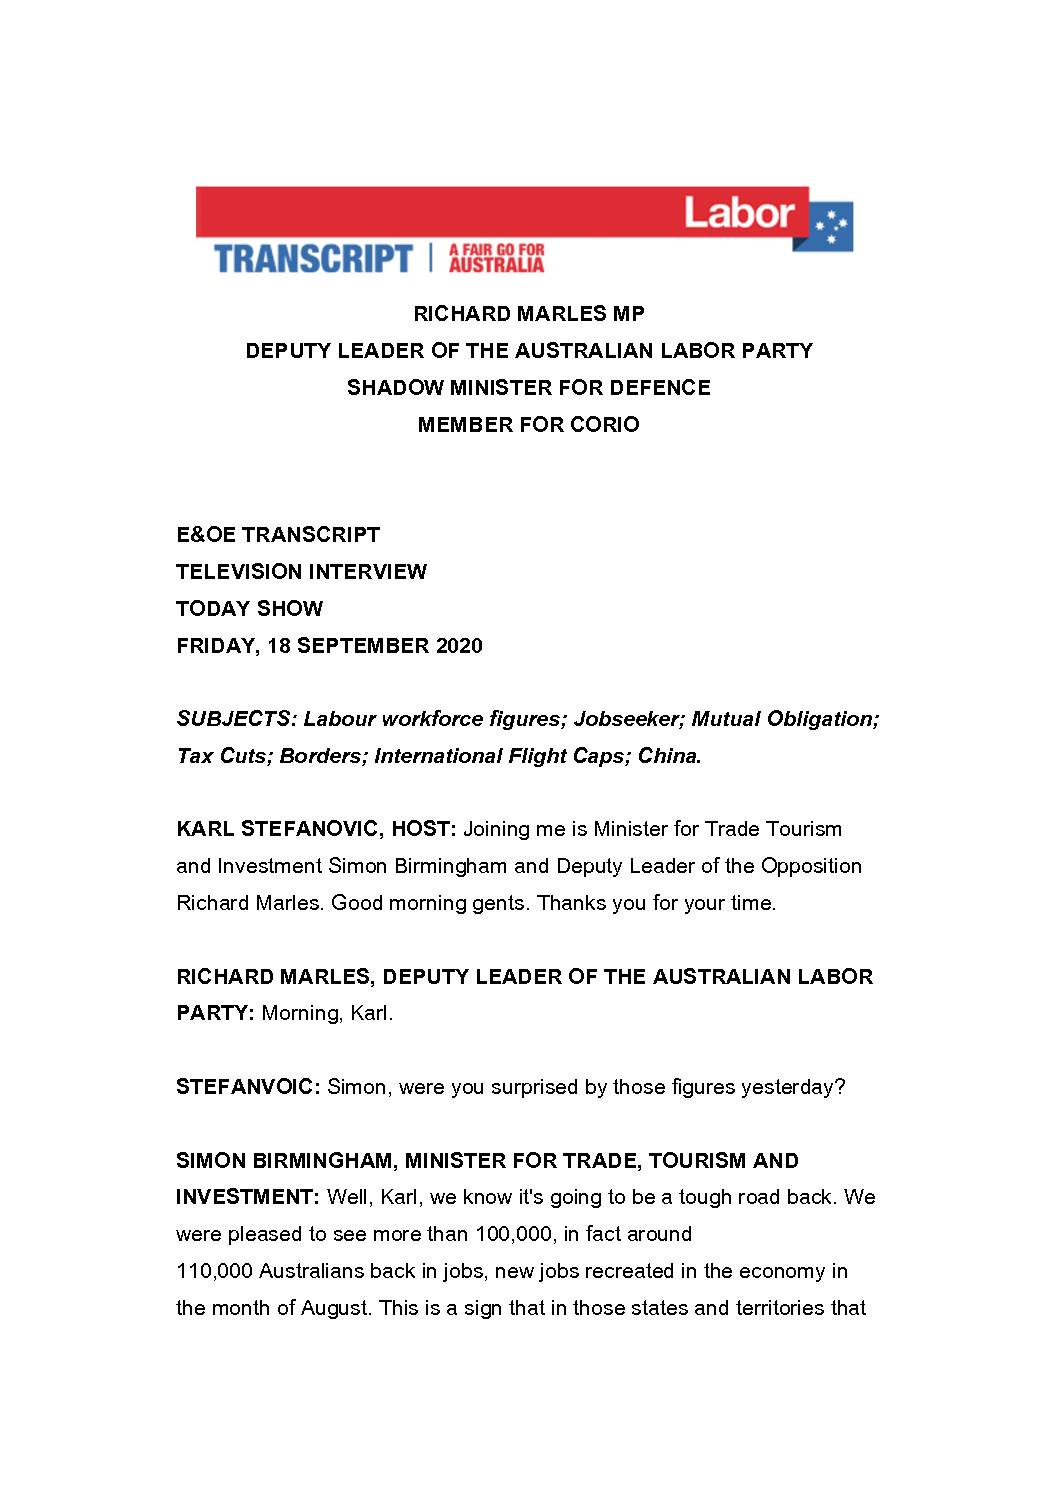 20.09.18-CHANNEL-9-THE-TODAY-SHOW-TRANSCRIPT